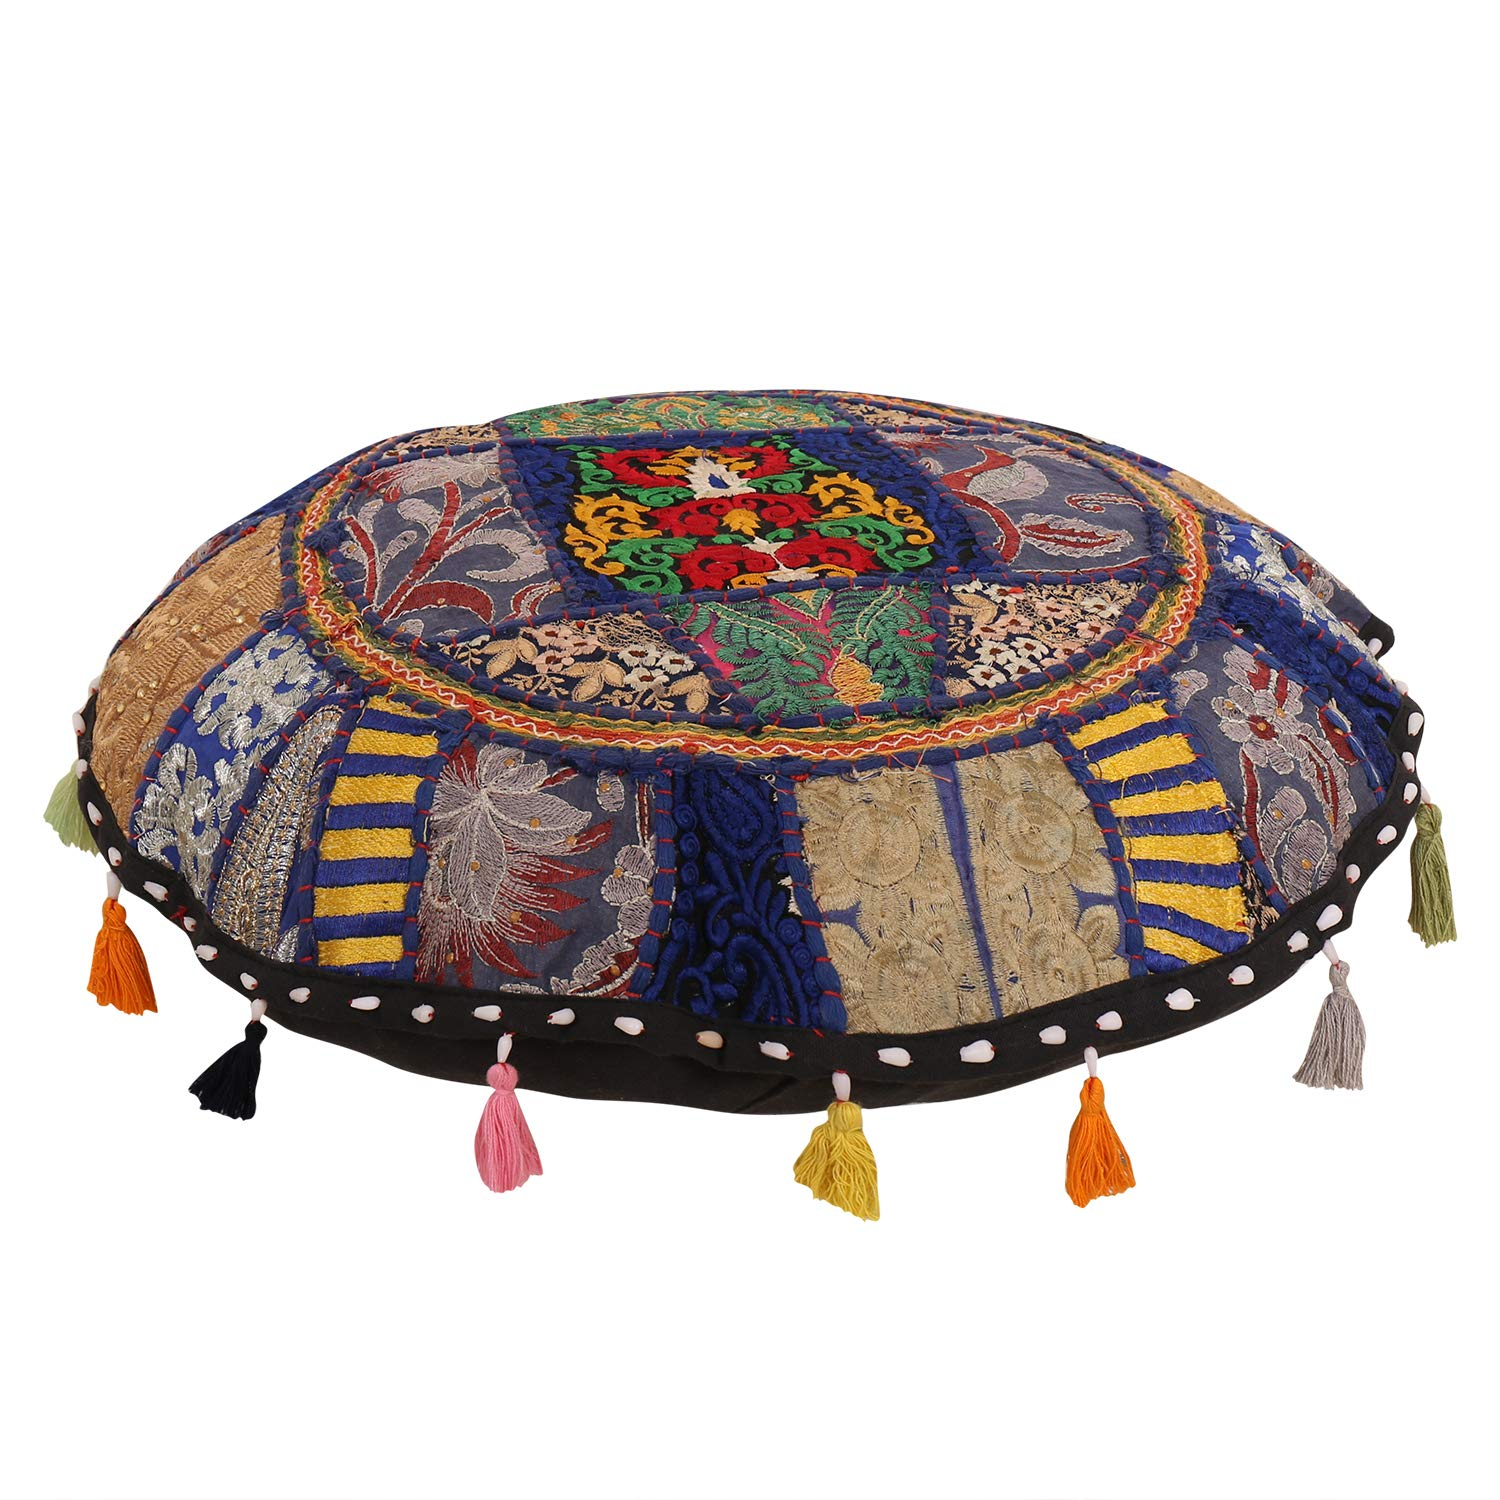 Beautiful Decorative Ruond Ottoman Indian Large discharge sale High quality Patchwork Pouffe India